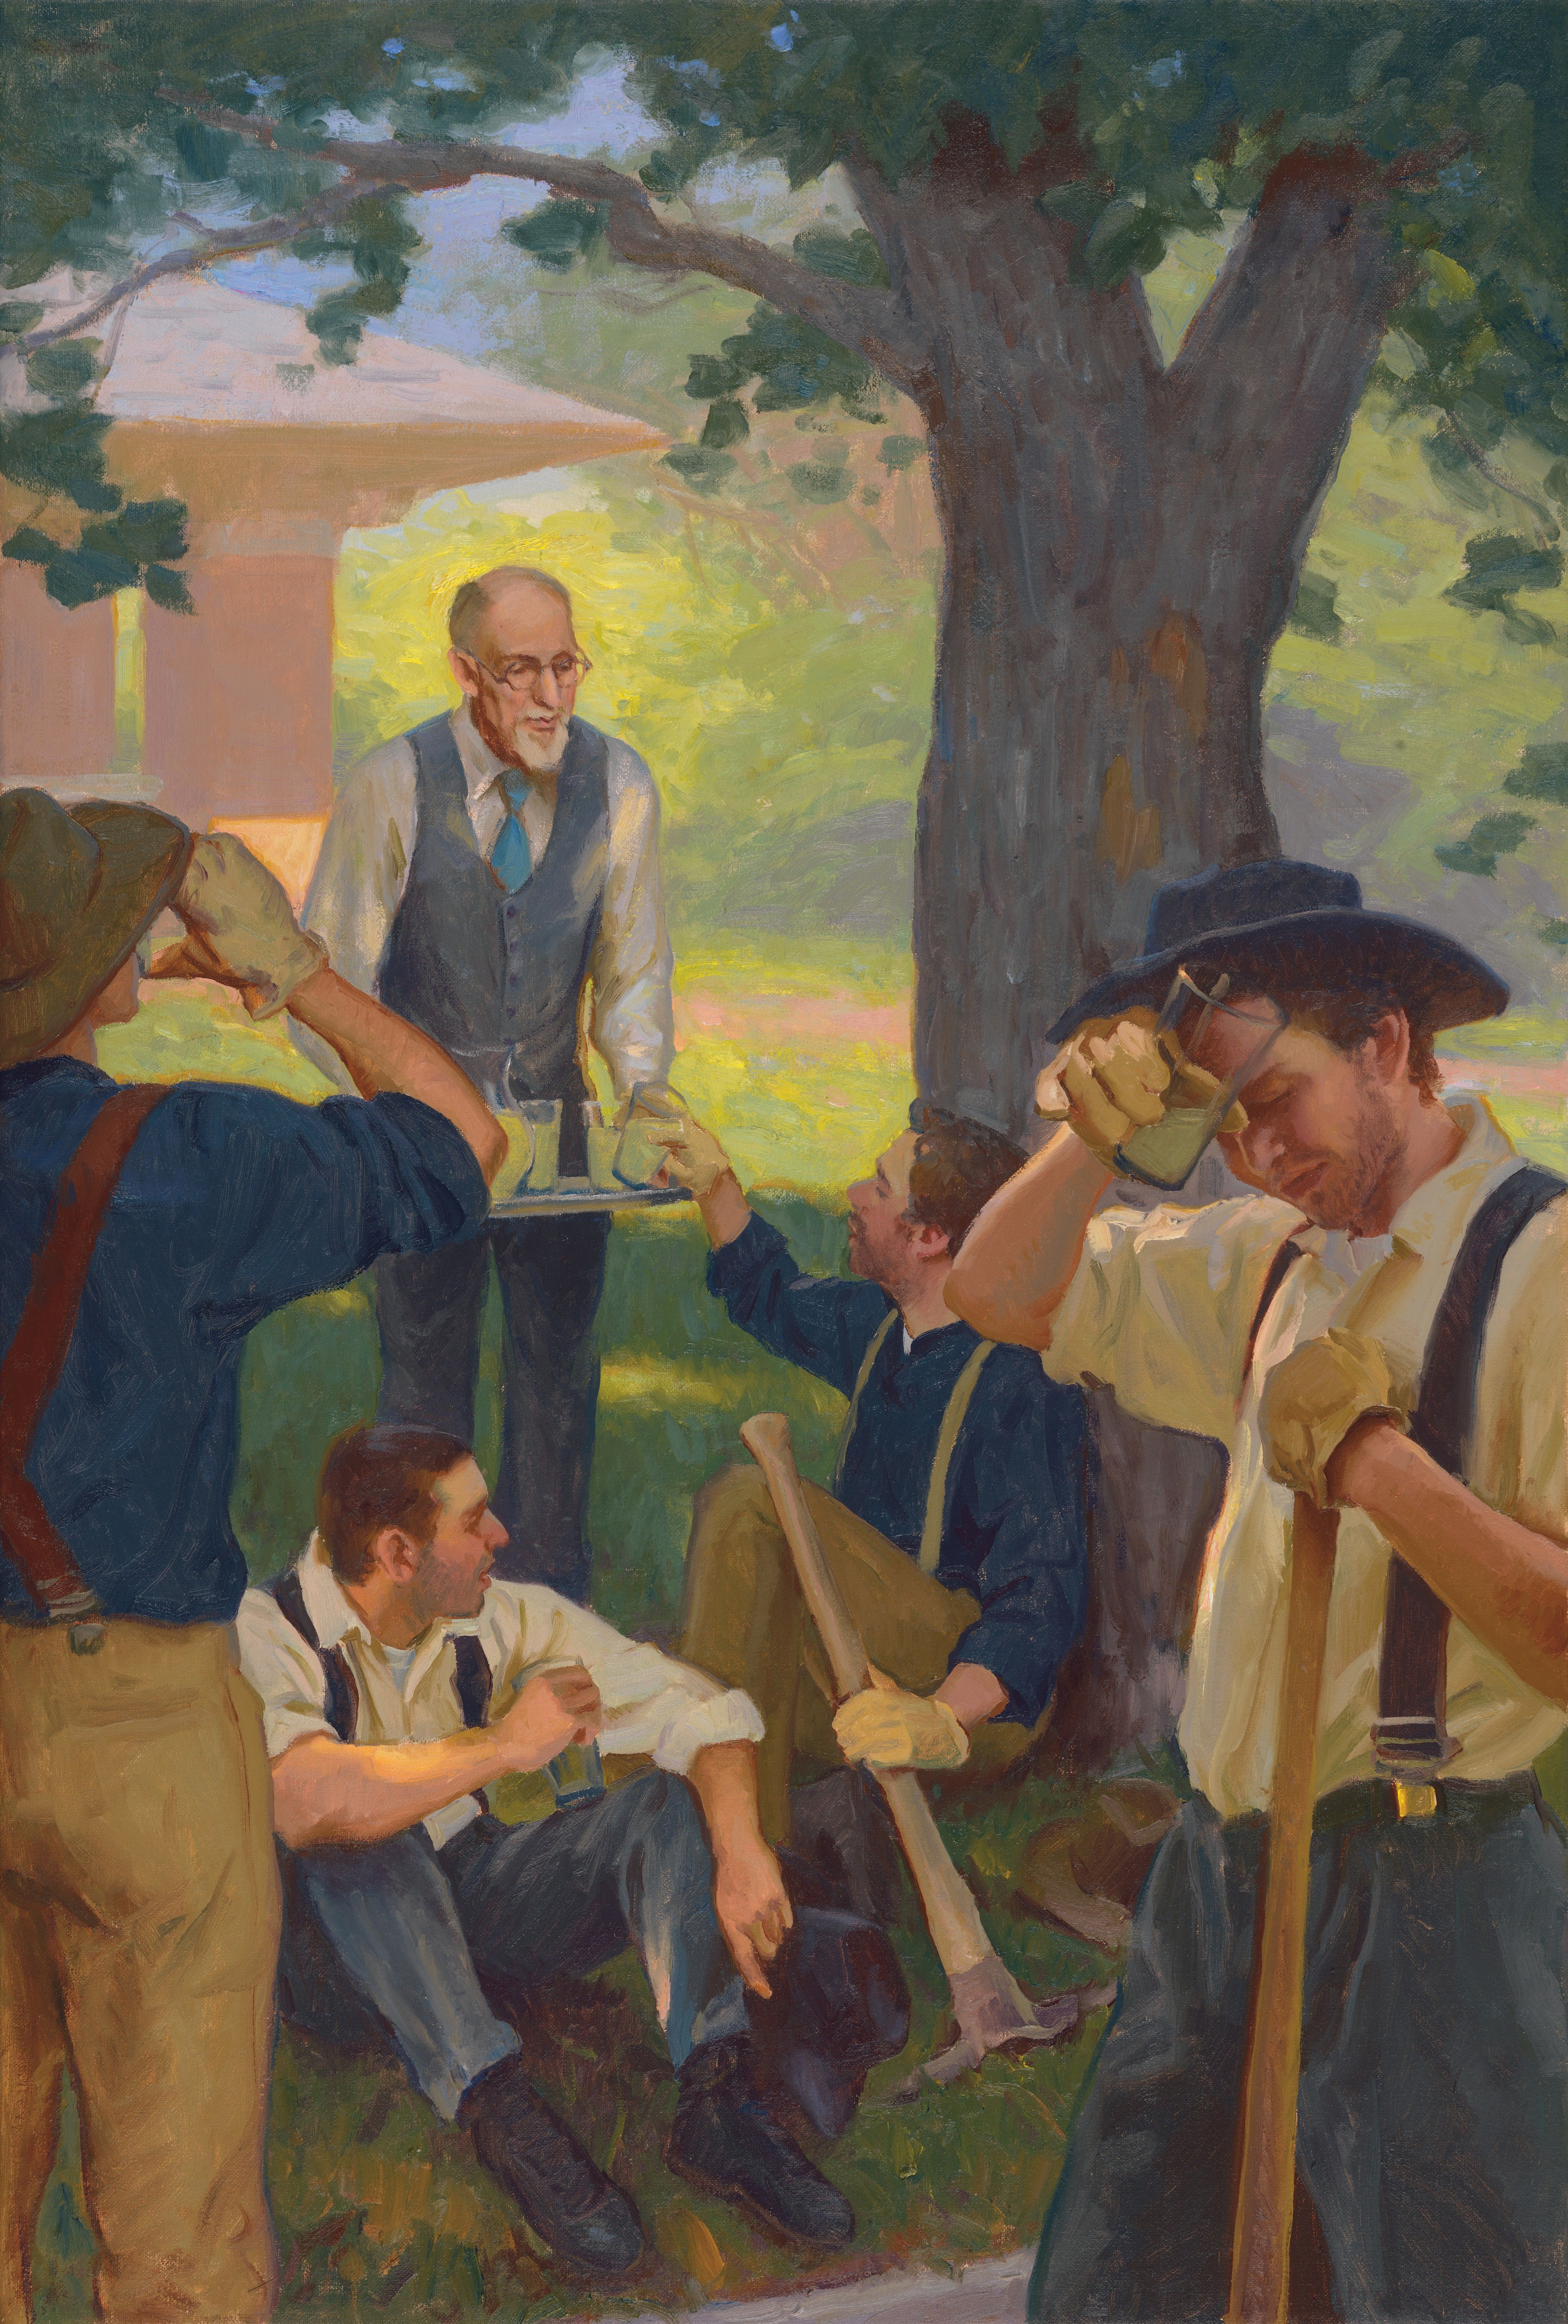 A depiction of President George Albert Smith serving lemonade to workers outside his home on a hot day. Teachings of Presidents of the Church: George Albert Smith (2011), 224